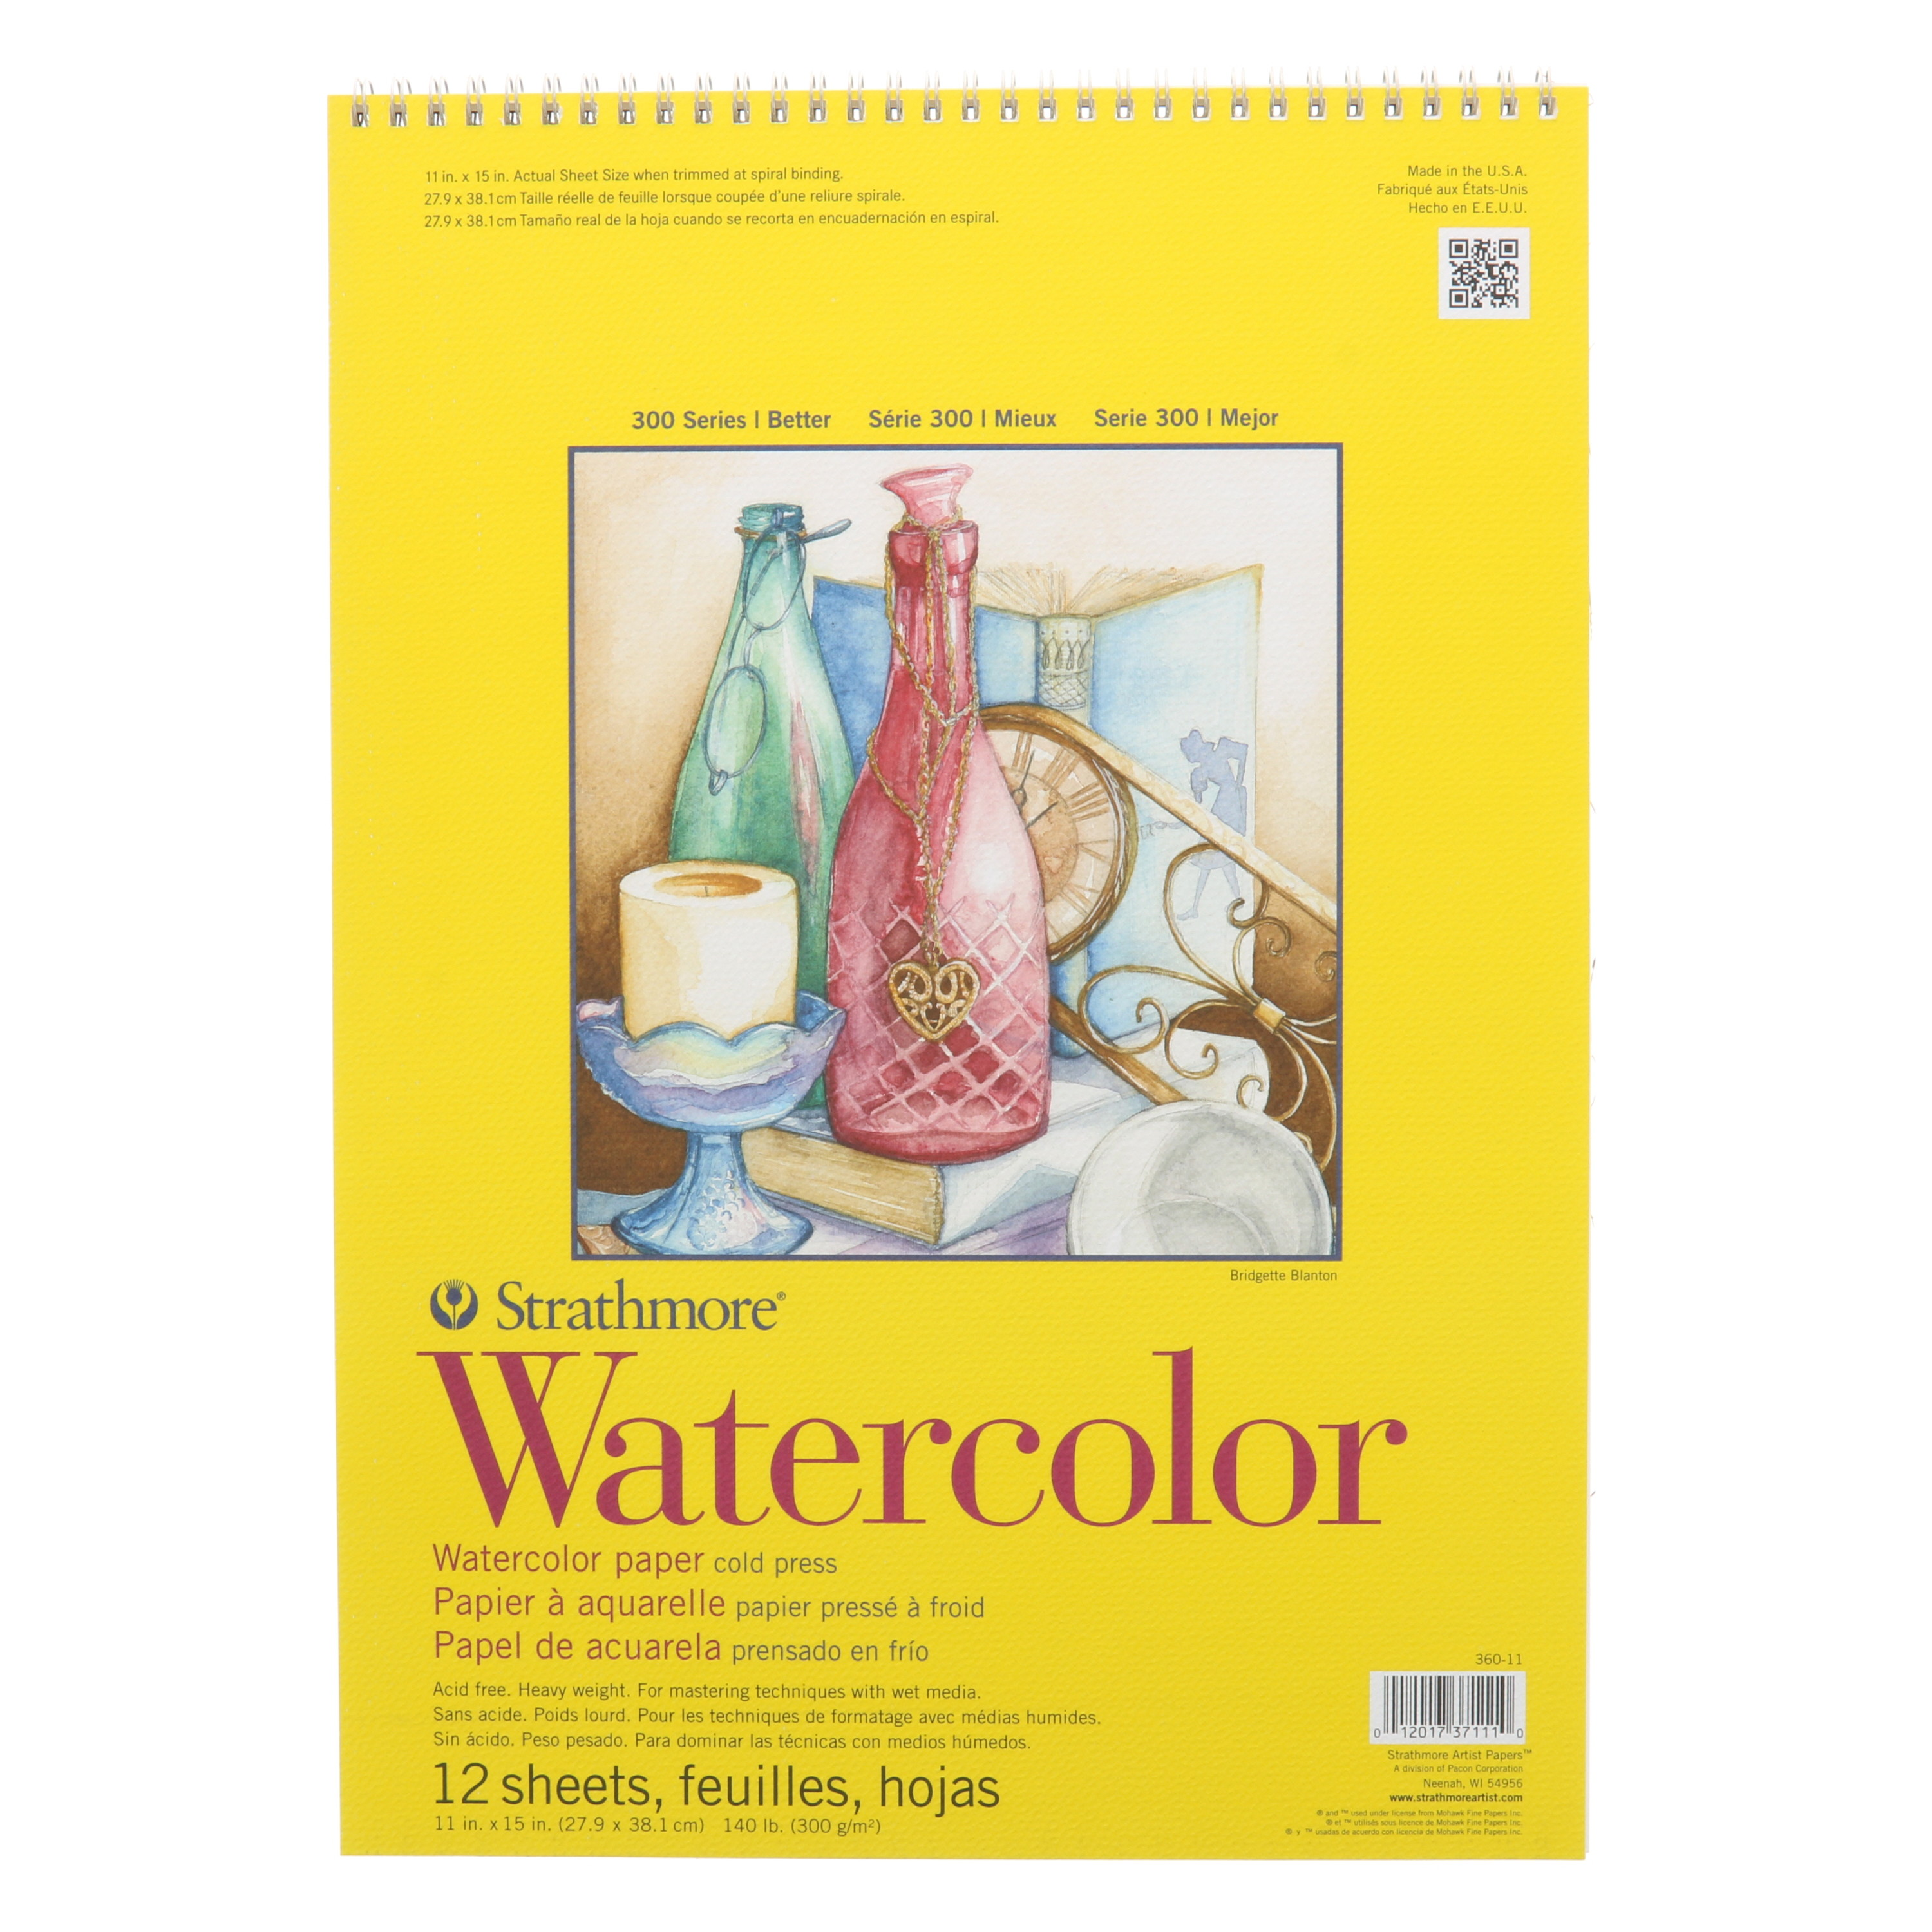 Strathmore Watercolor Paper Pad, 300 Series, 11in x 15in, Tape-Bound